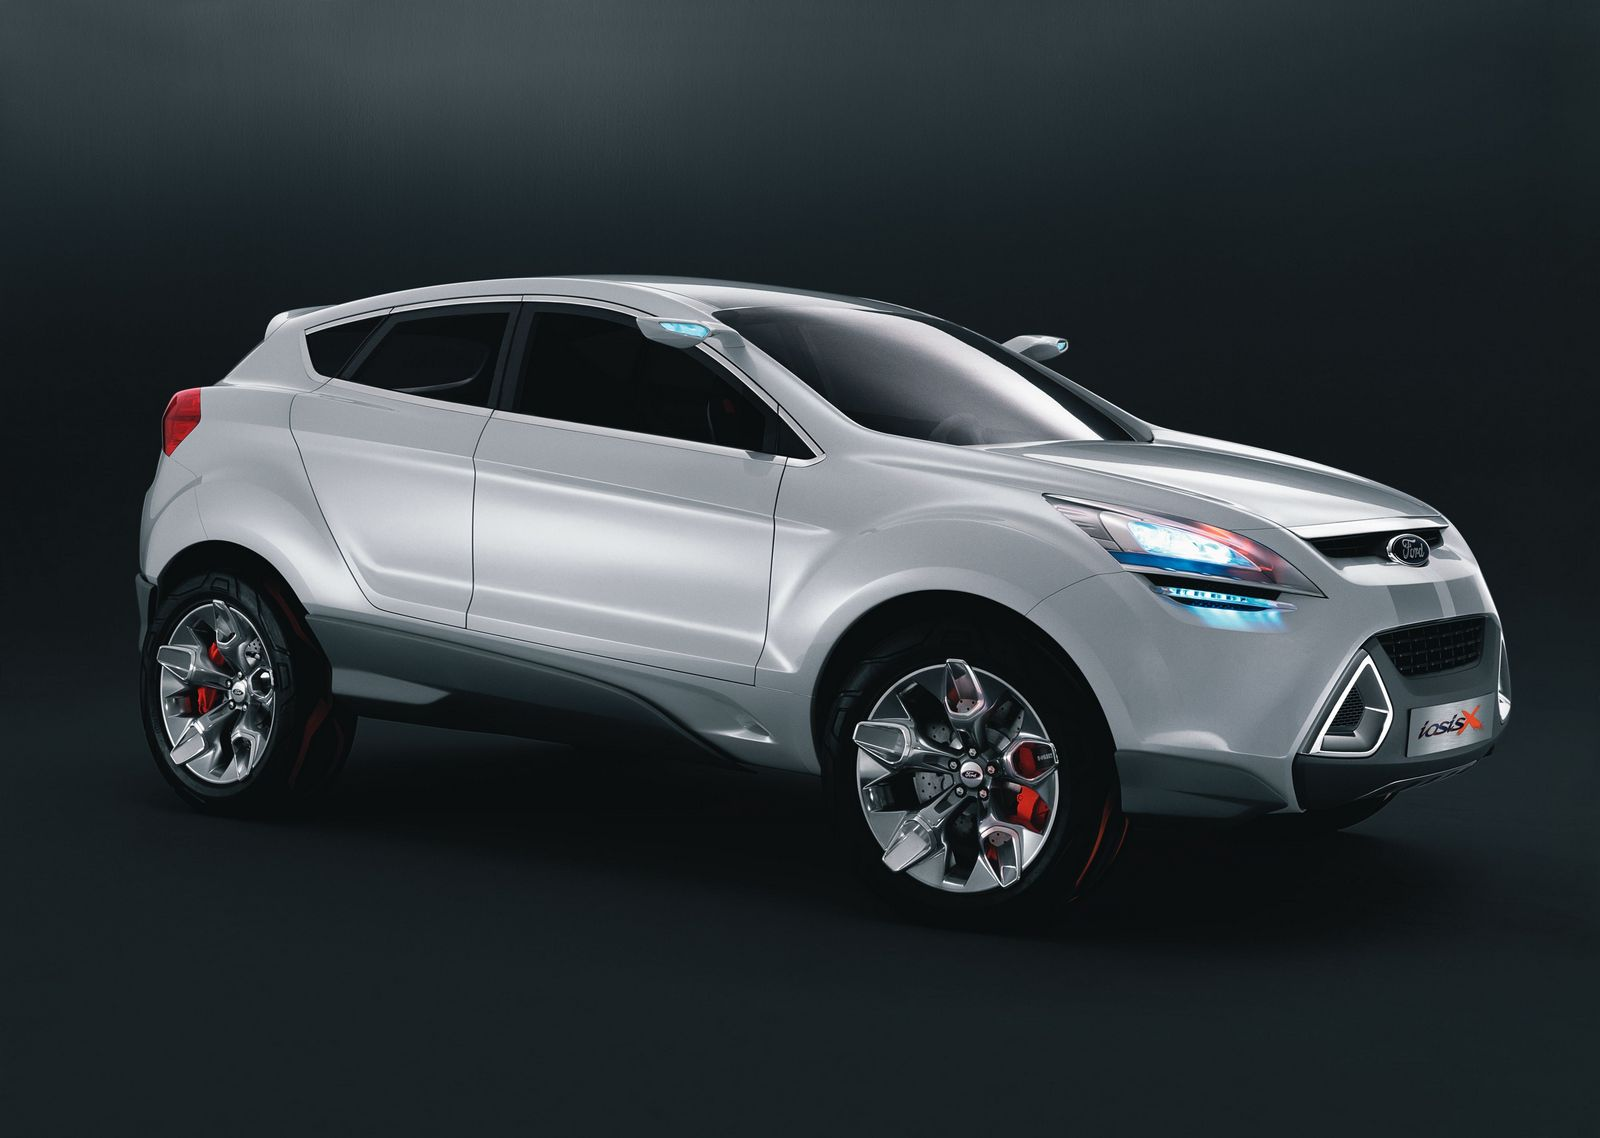 2019 Ford iosis X Concept photo - 3